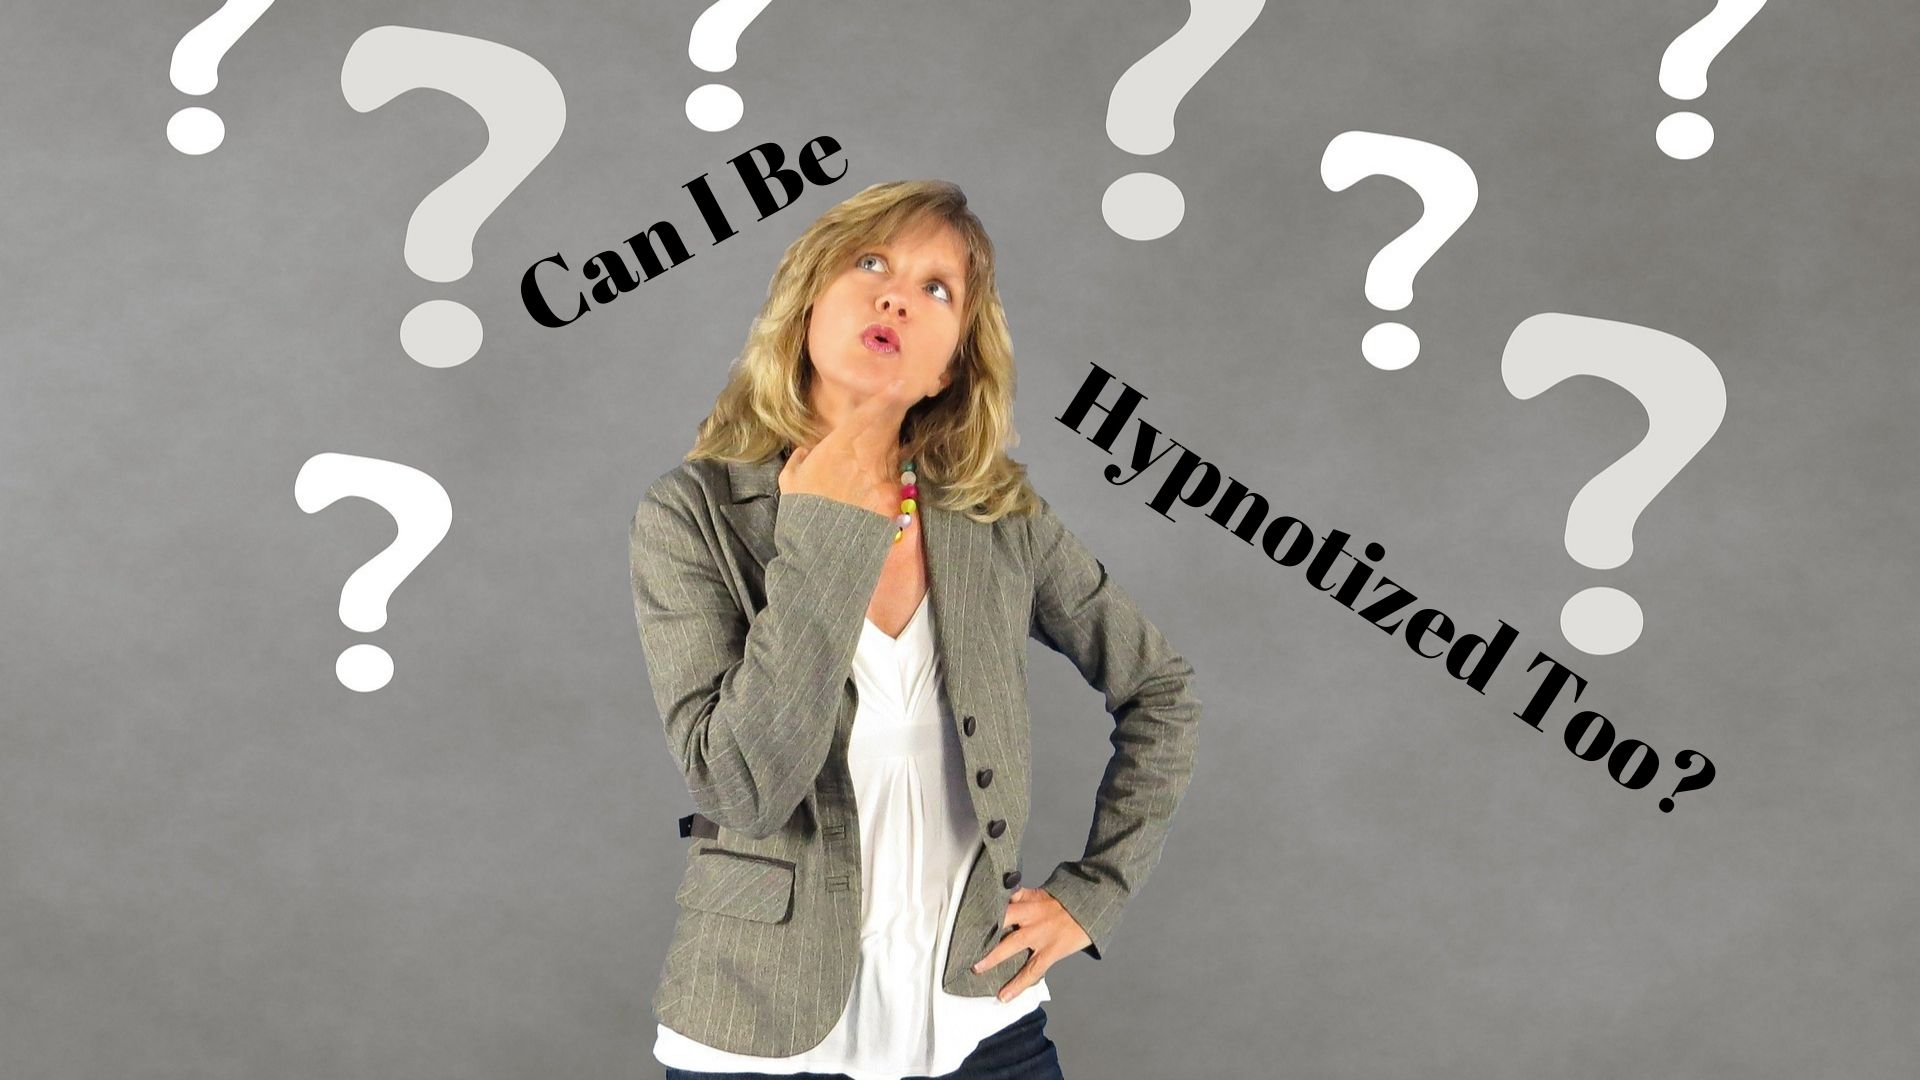 CAN EVERYONE BE HYPNOTIZED?